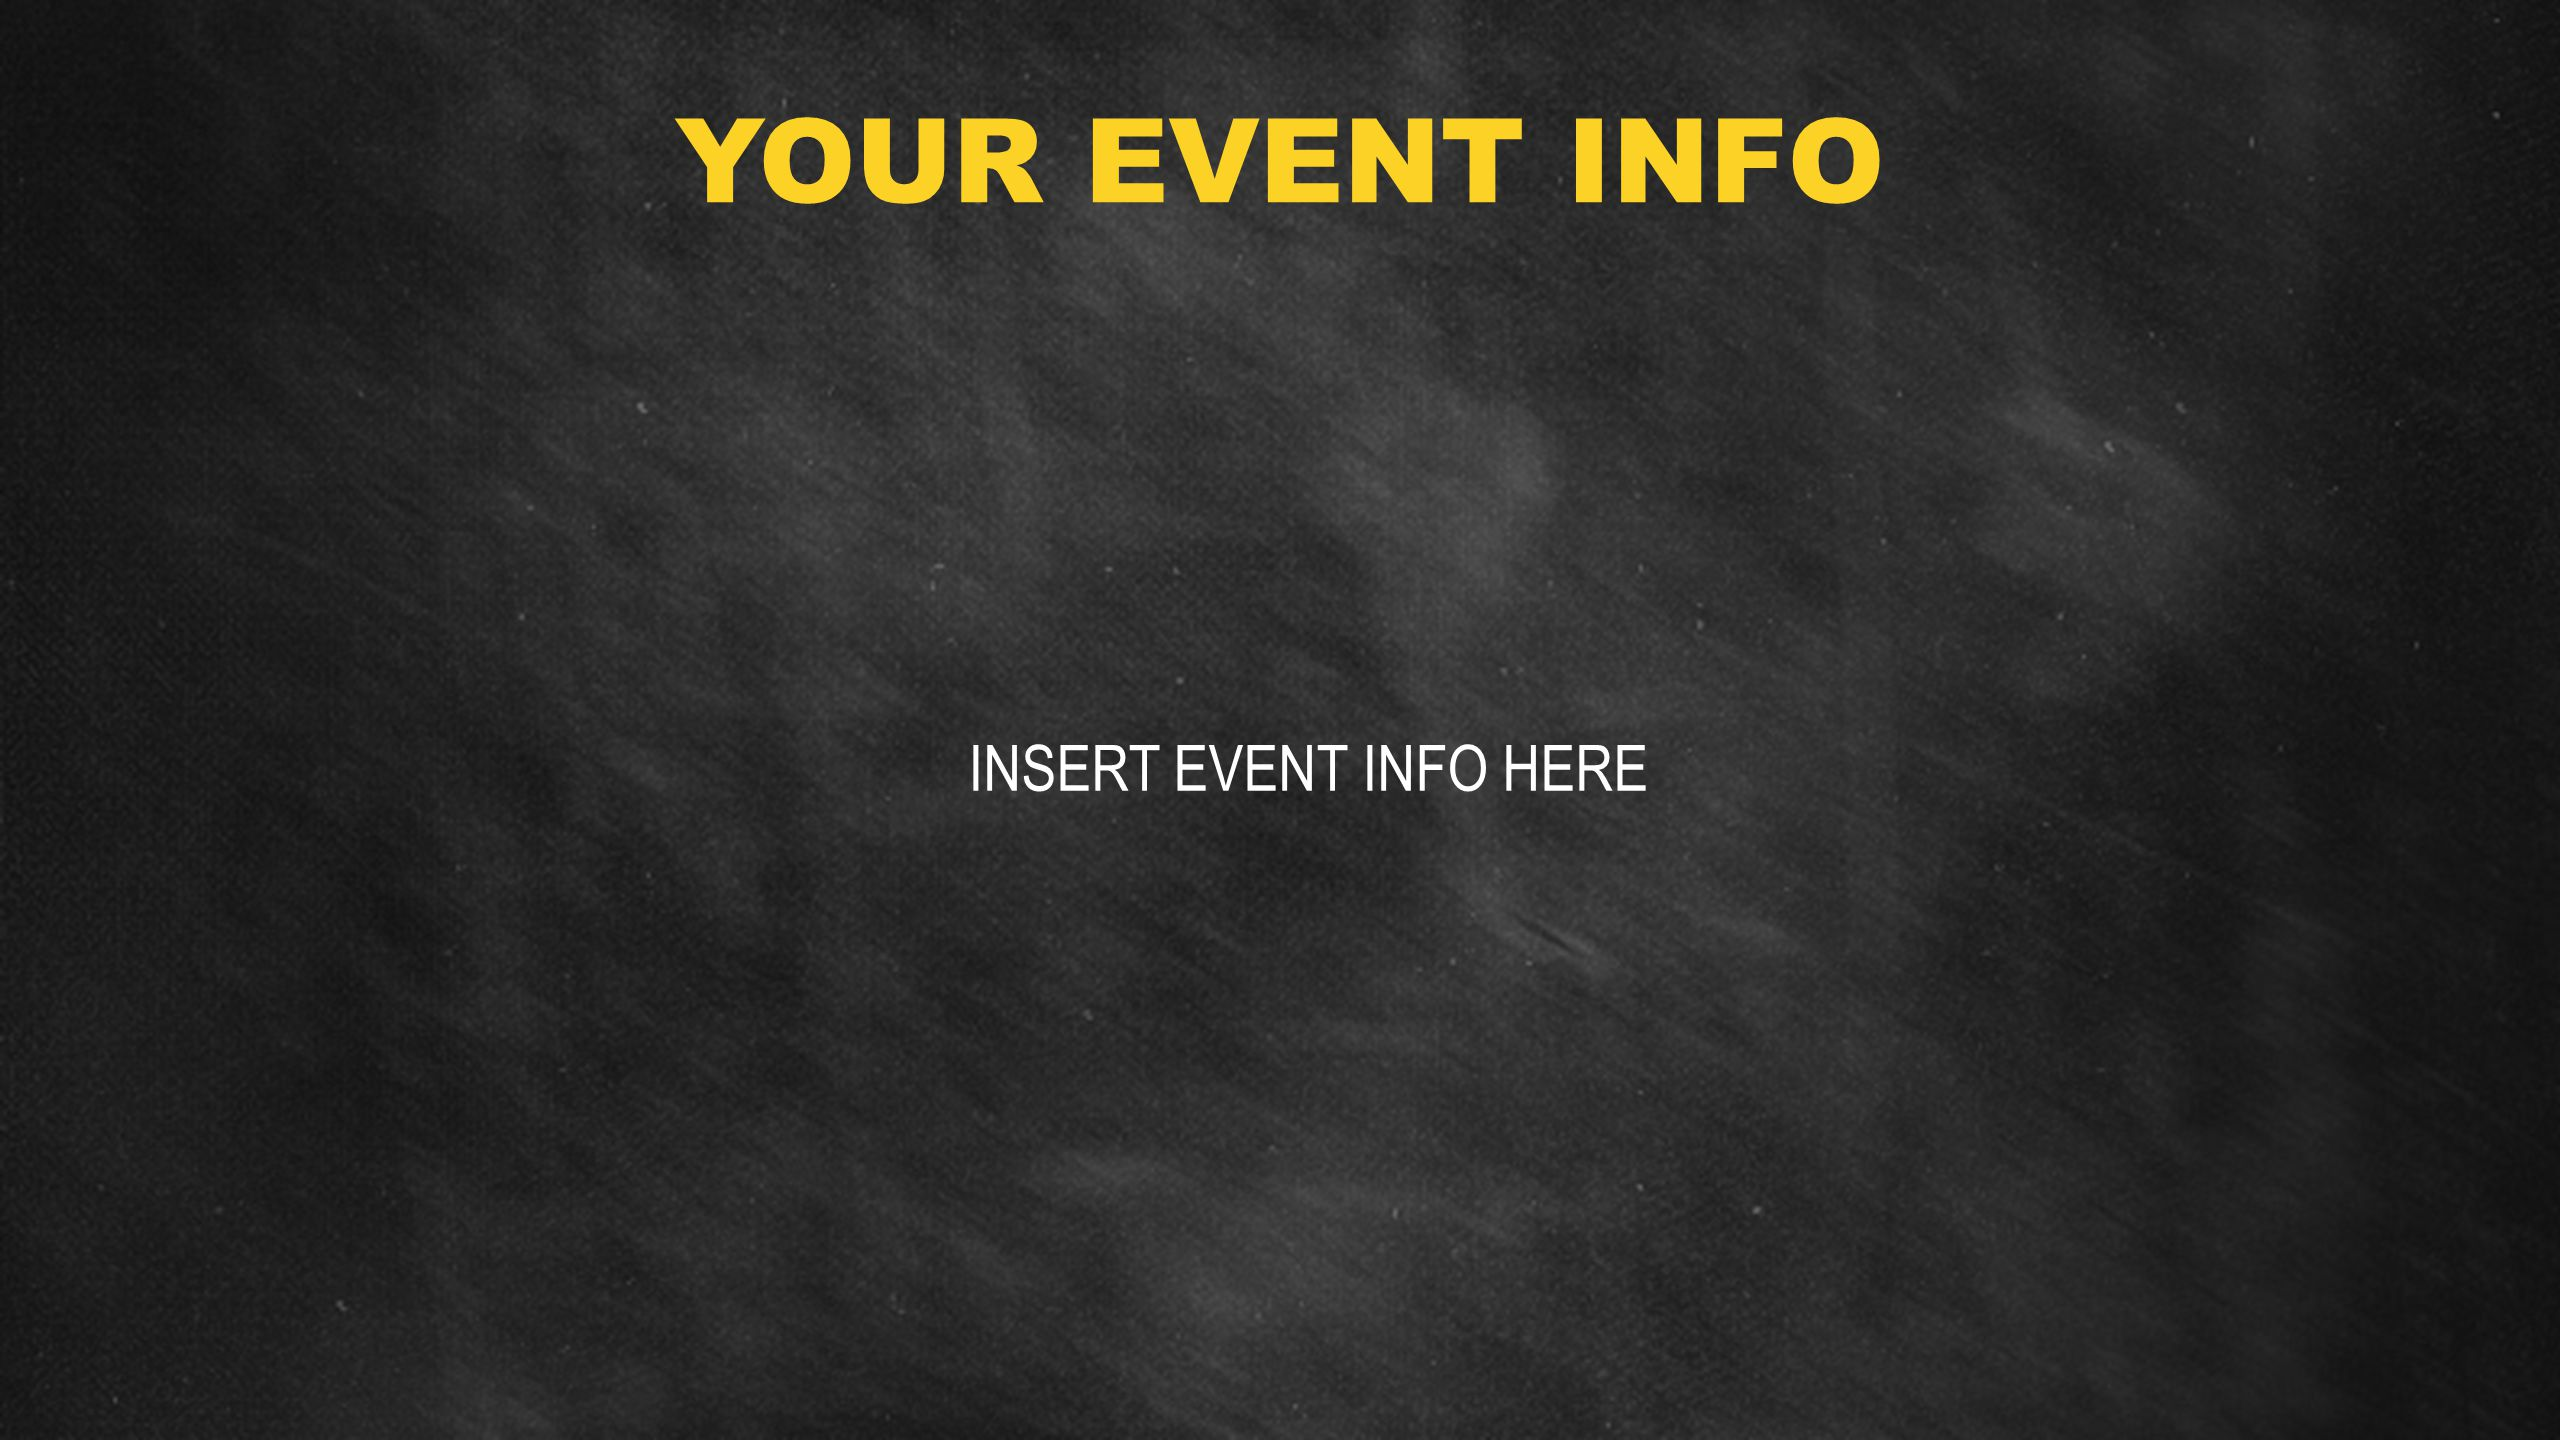 INSERT EVENT INFO HERE YOUR EVENT INFO